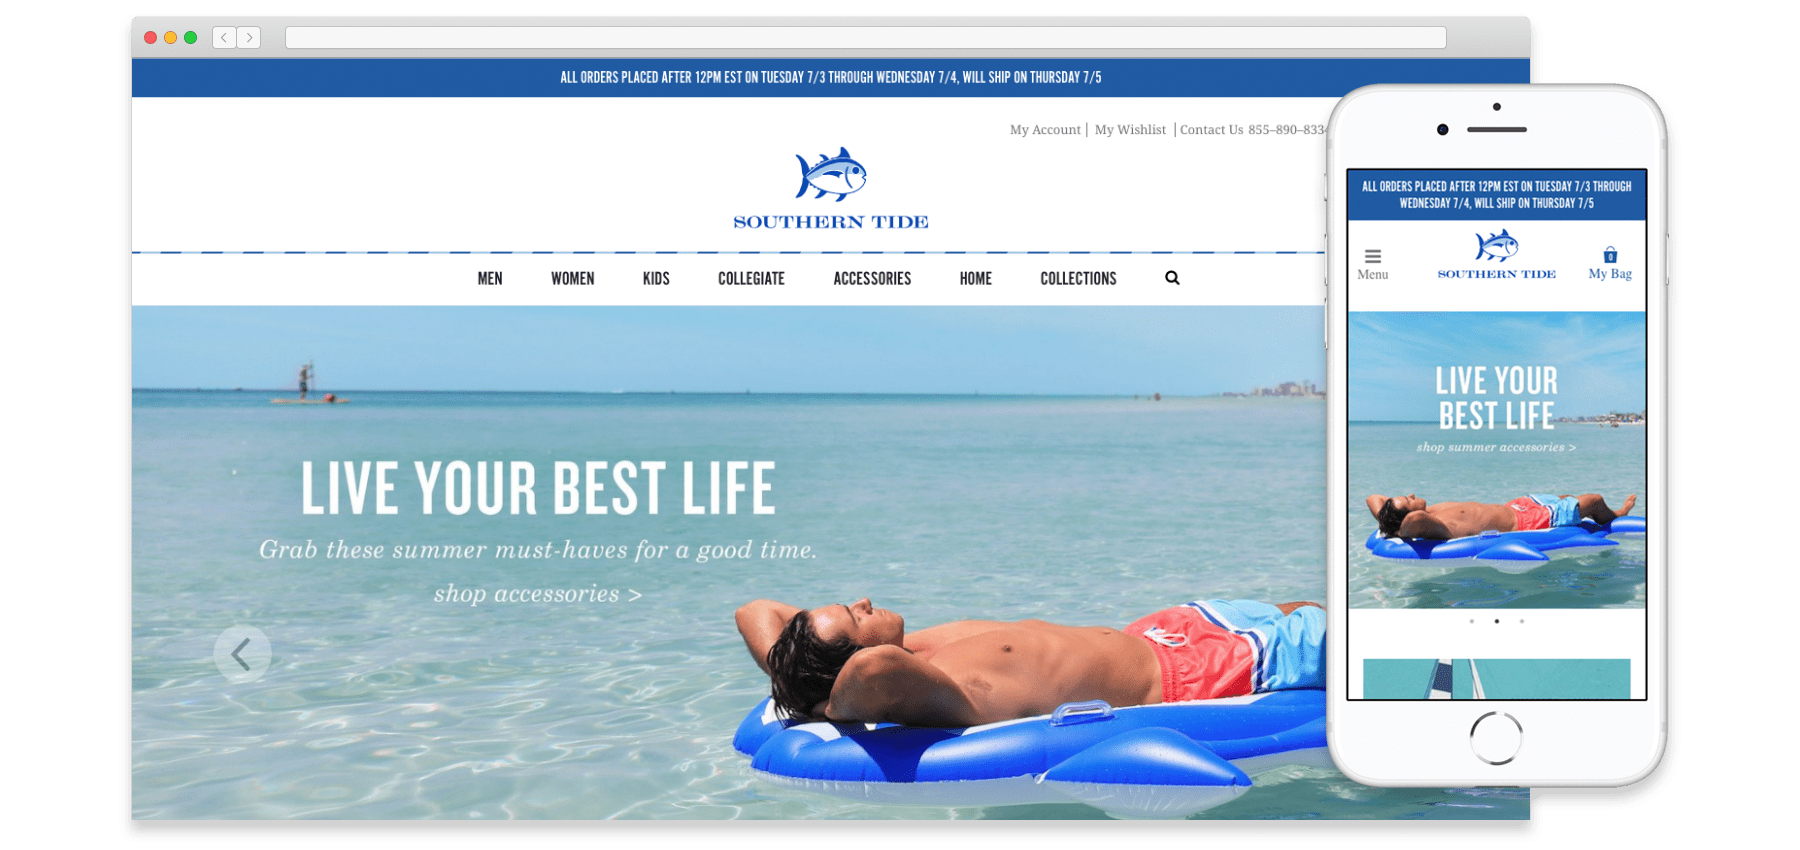 A mockup of the Southern Tide website on desktop and mobile sizes.